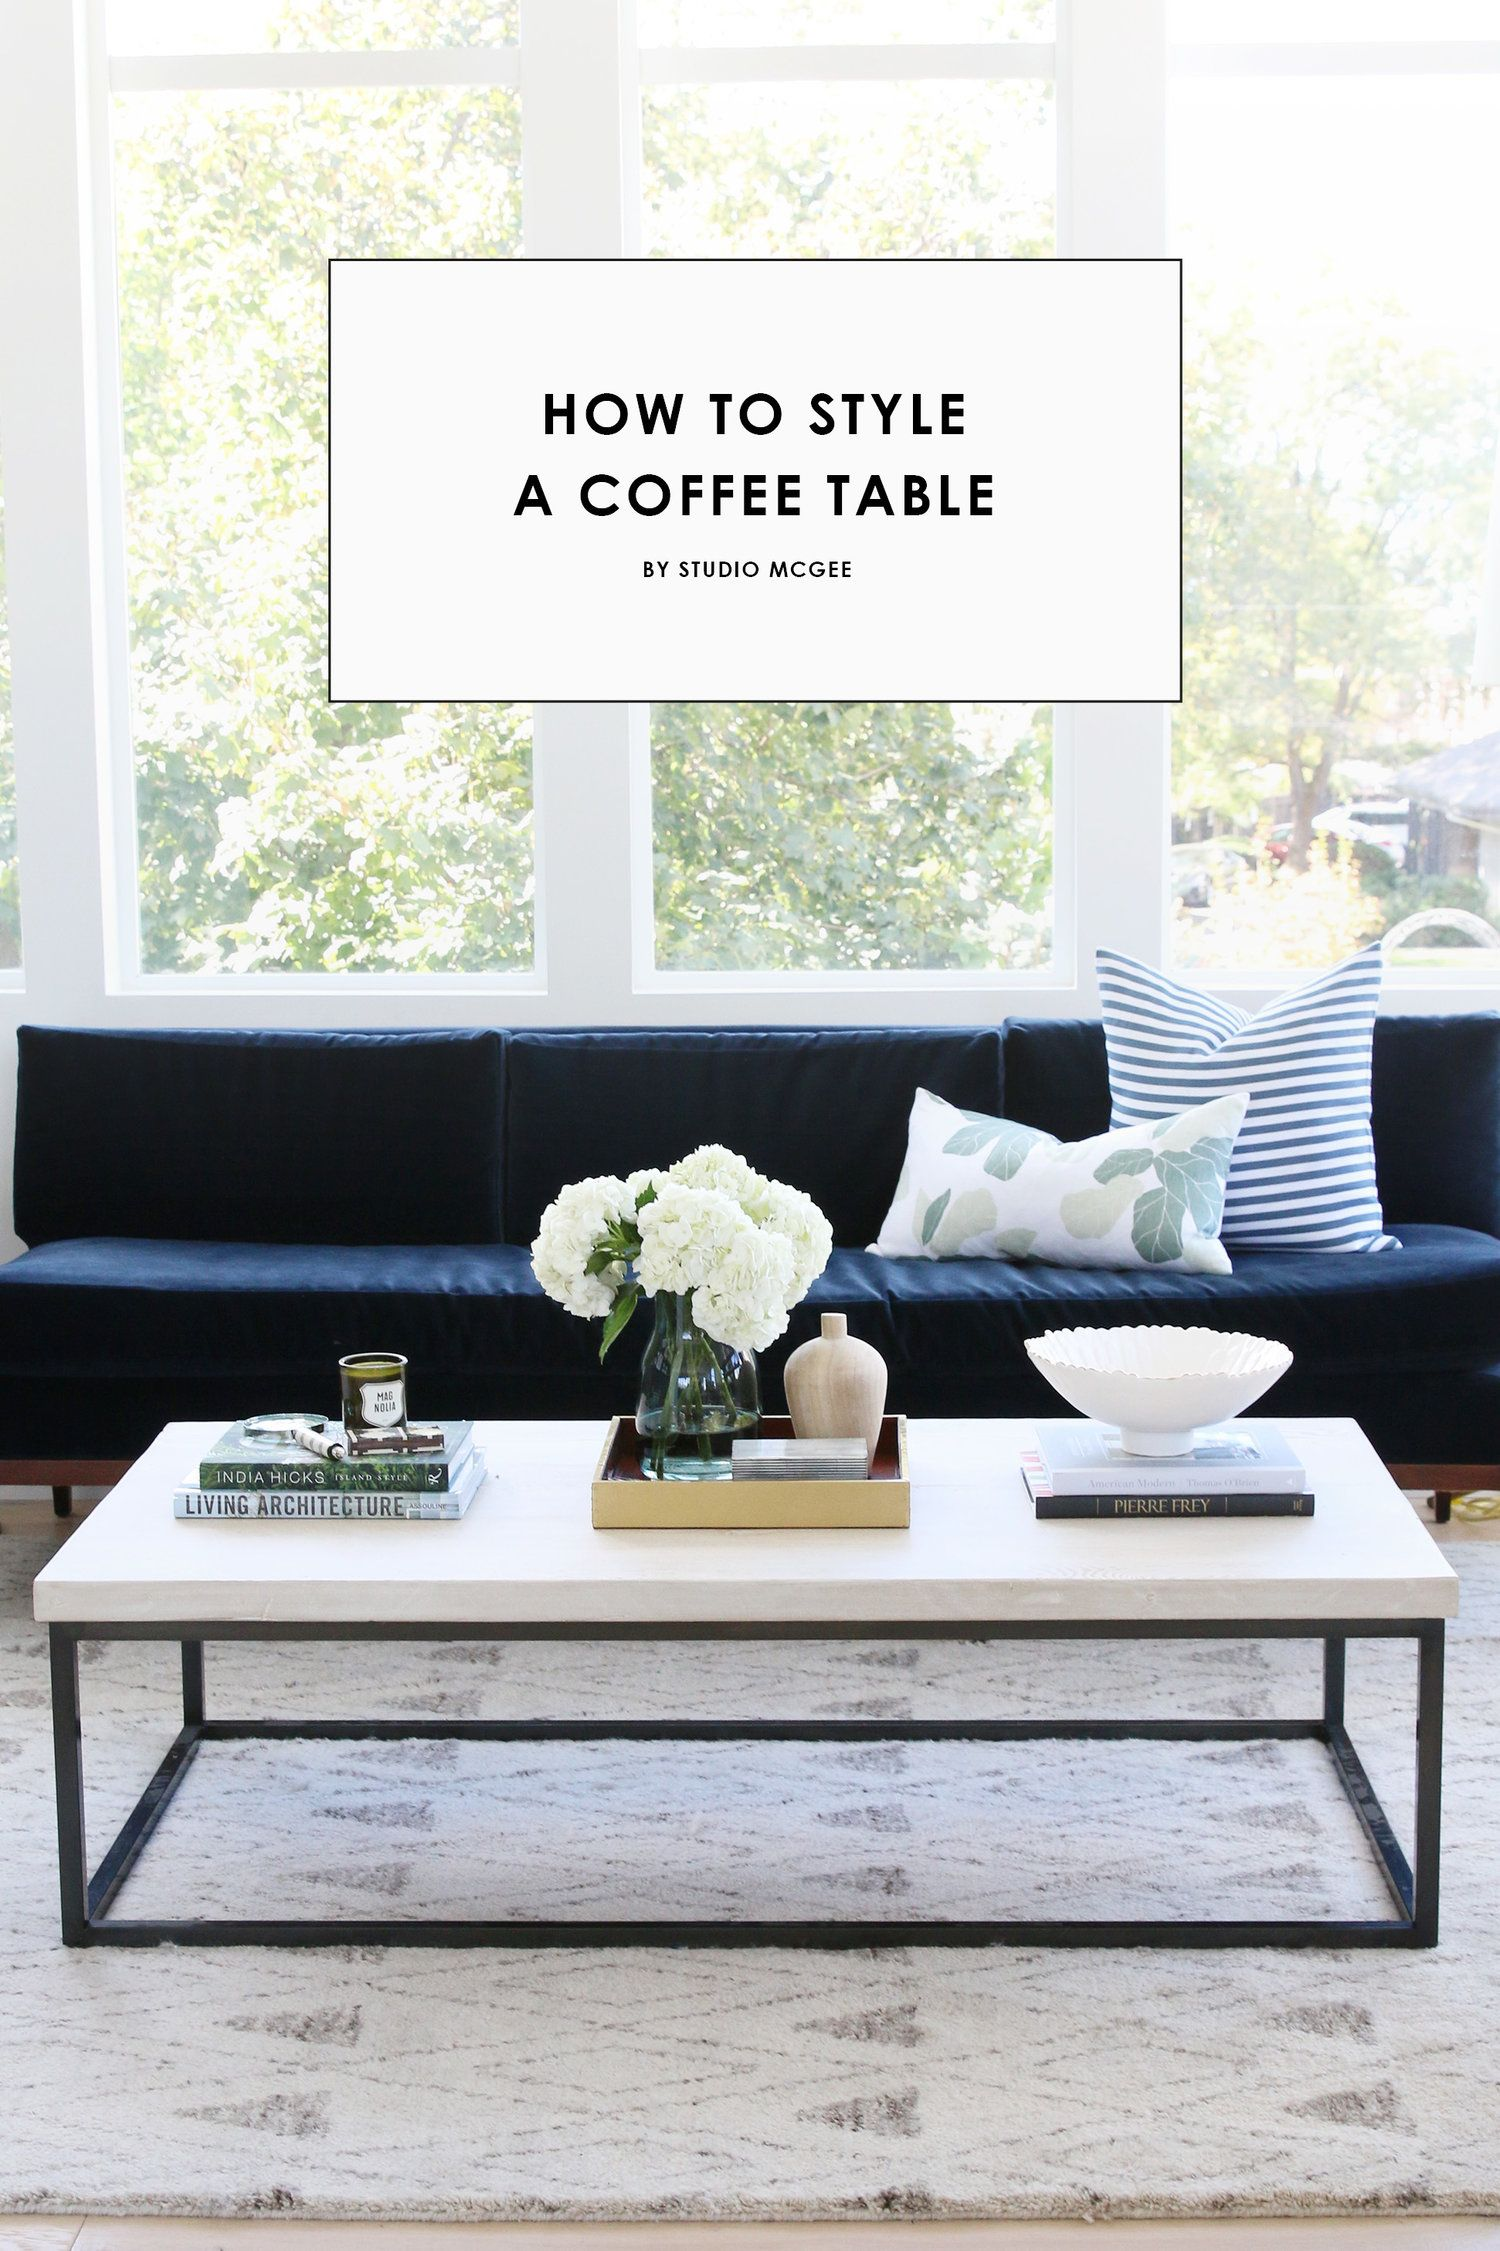 Studio mcgee how to style a coffee table